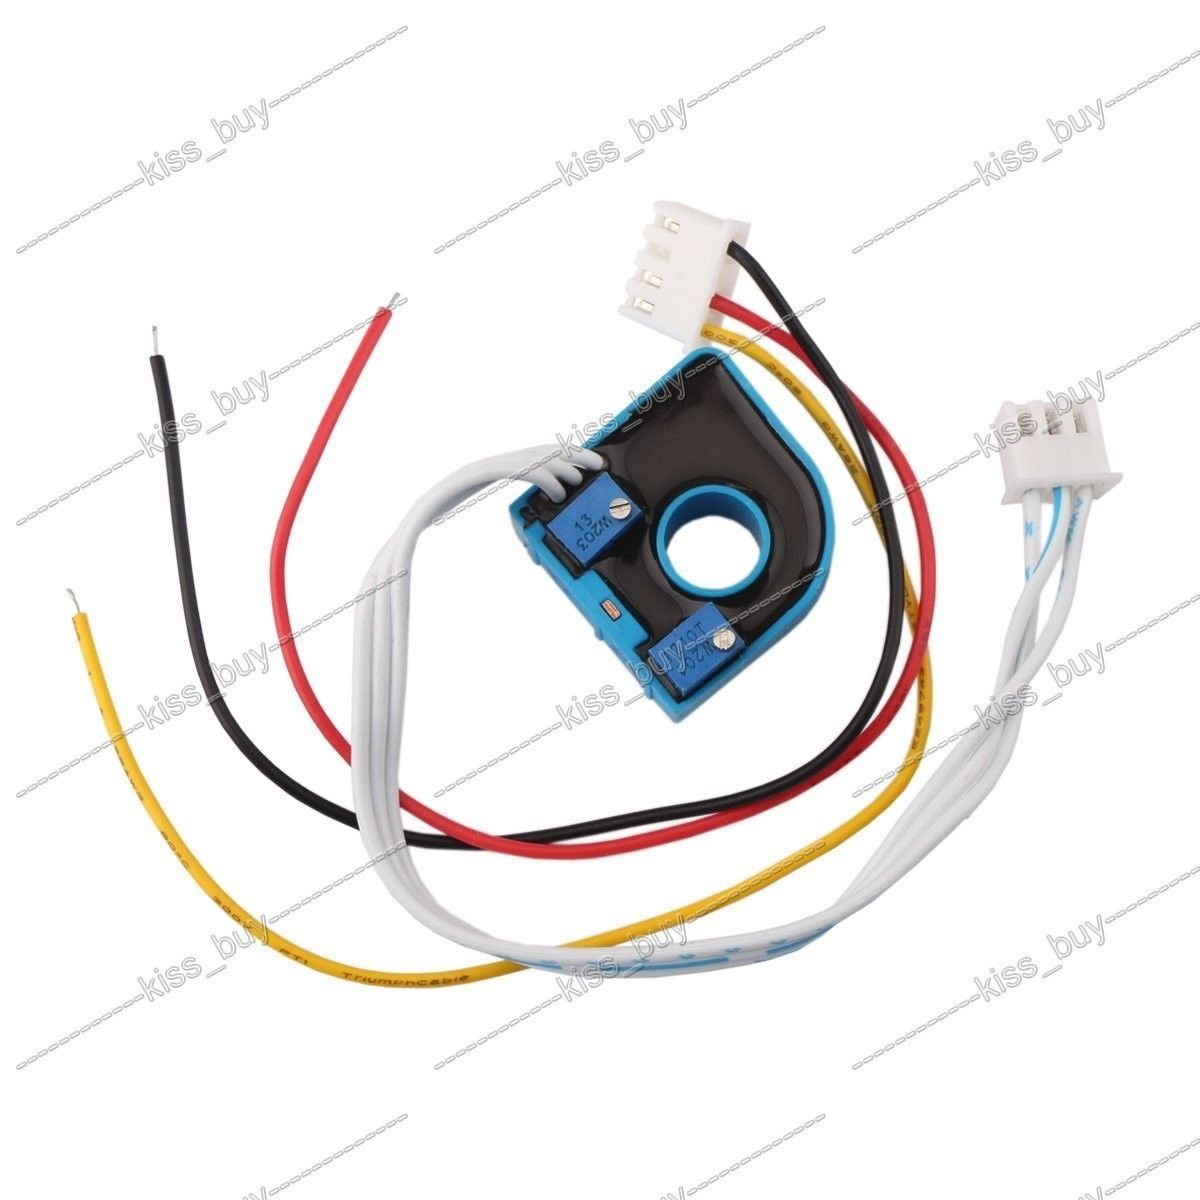 medium resolution of dc 0 600v 200a volt amp meter dual display voltage current 12v 24v car voltmeter ammeter charge discharge solar battery monitor in integrated circuits from